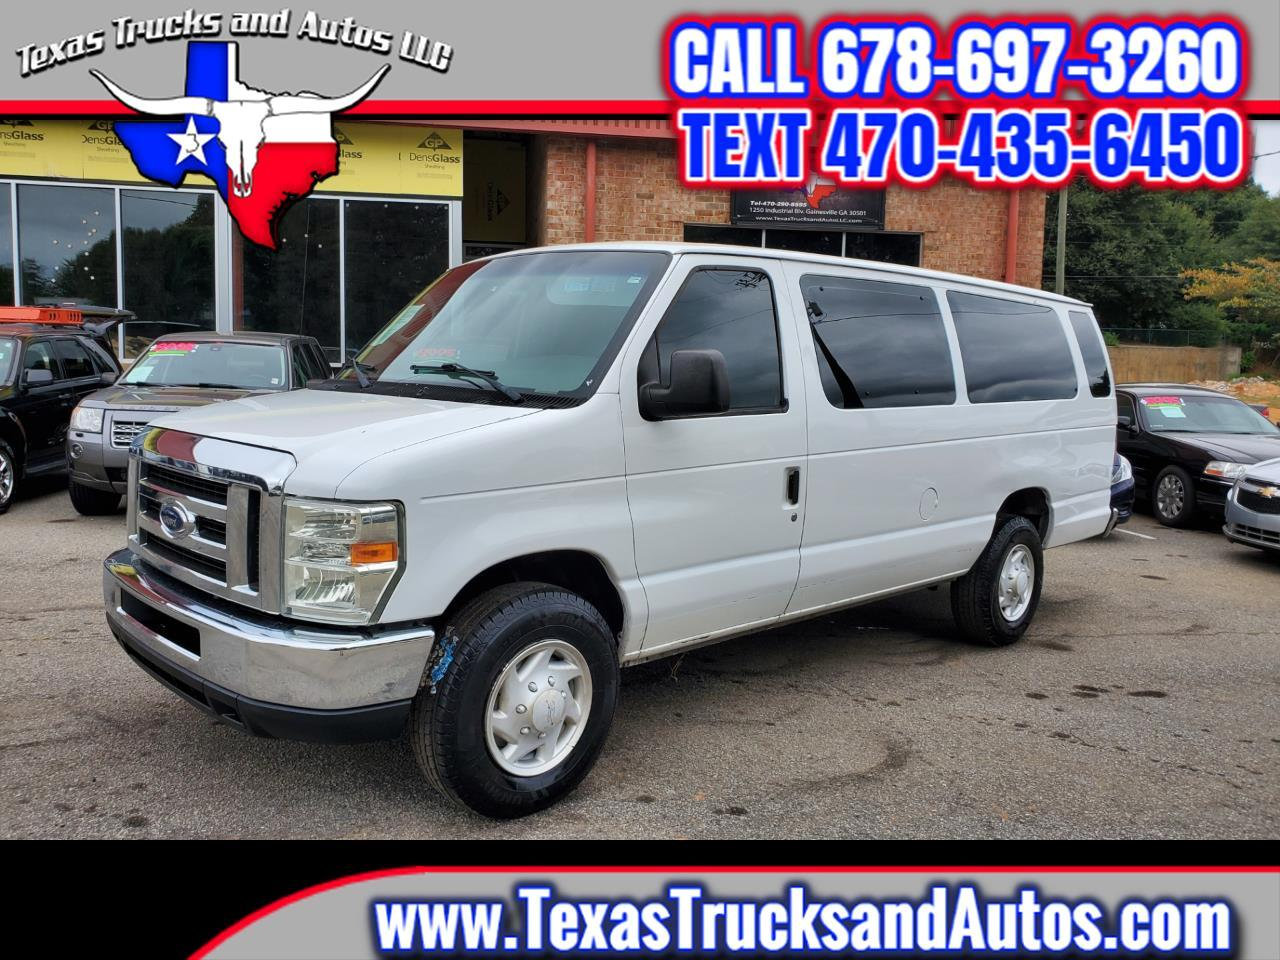 Ford Econoline Wagon E-350 Super Duty Ext XLT 2008